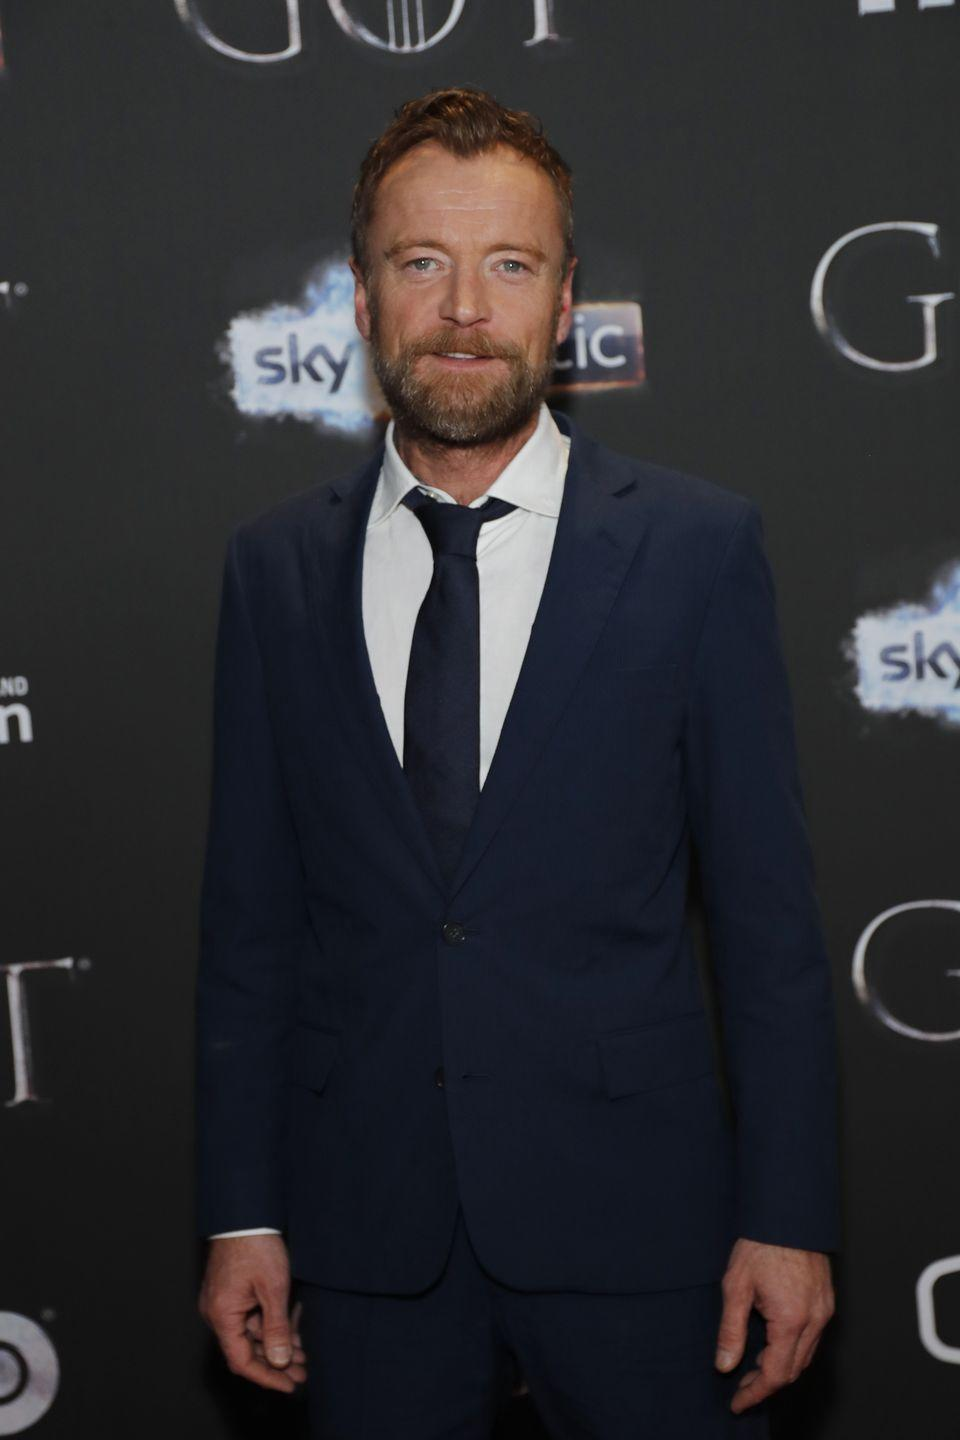 <p>Not only does the man play Beric Dondarrion on <em>Game of Thrones,</em> a proud Irishman from Portadown, but he also chose to live a quiet life in Belfast in between acting projects.</p>